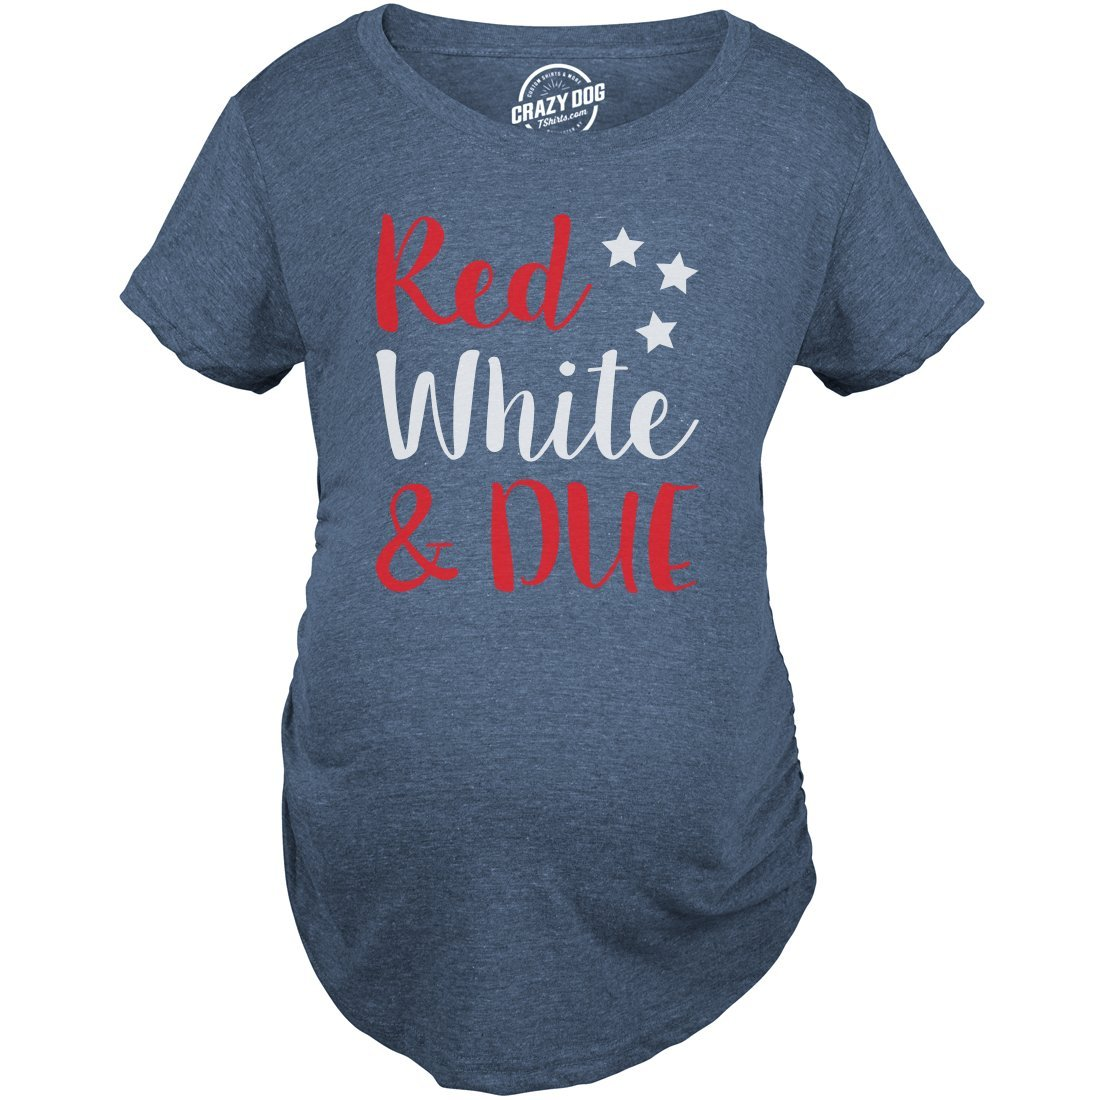 Crazy Dog T-Shirts Maternity Red White and Due Pregnancy Tshirt Funny 4th of July Patriotic Tee (Heather Navy) -XL